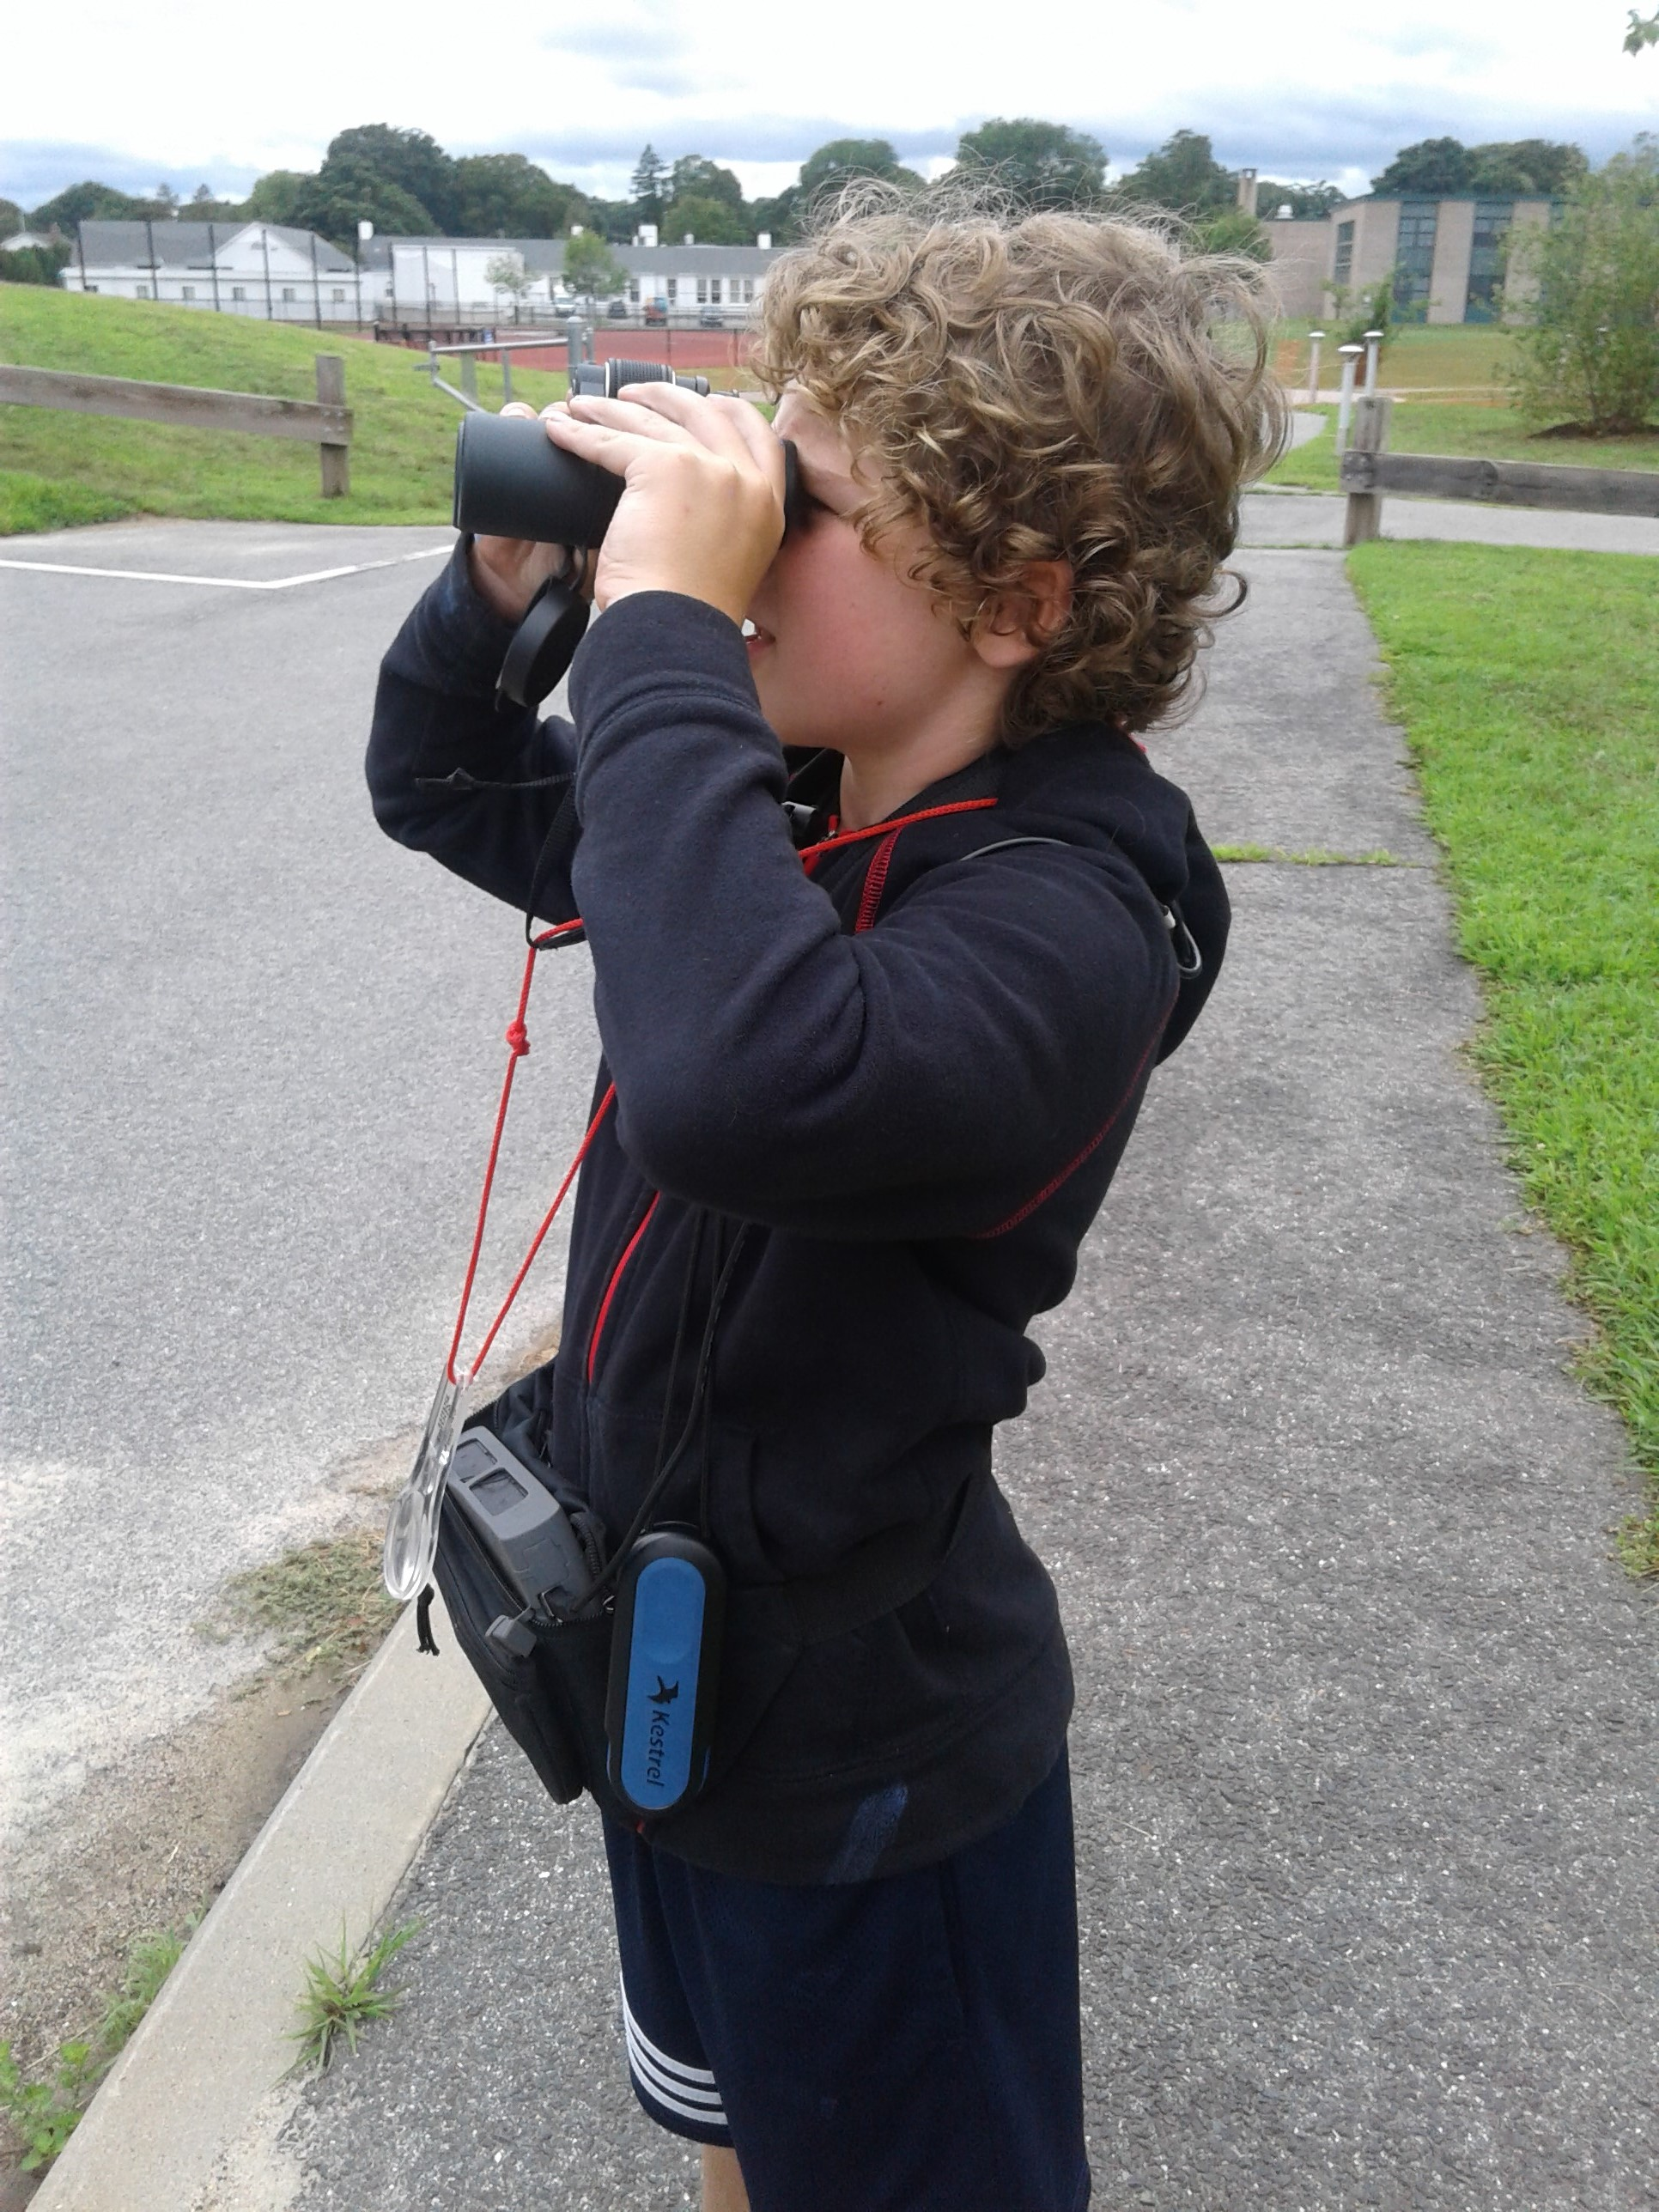 using binoculars